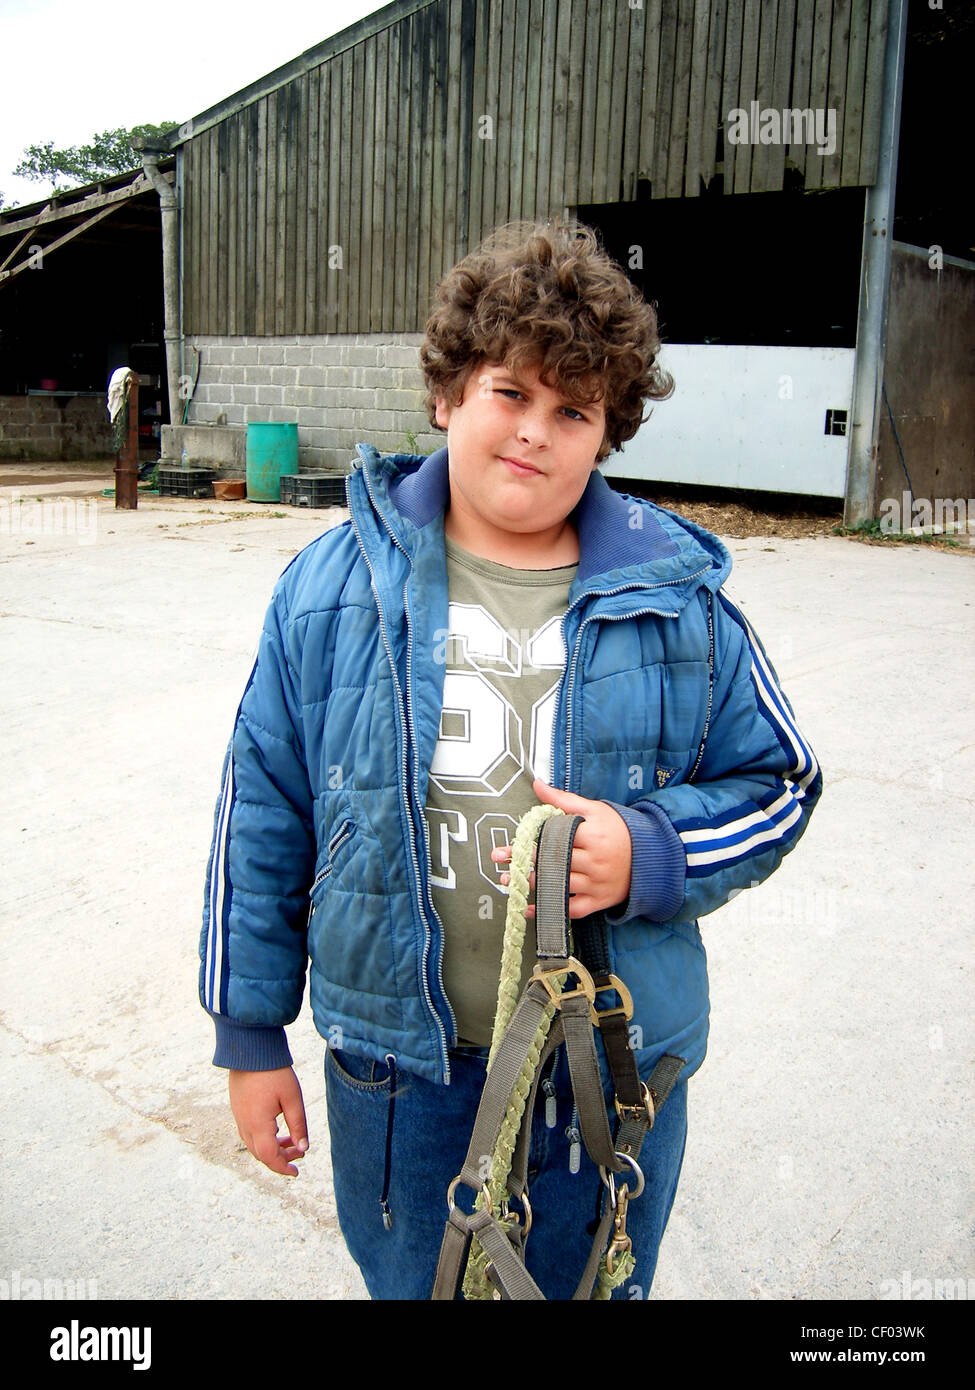 A brown curly haired male, wearing blue jeans, a khaki top and blue quilted jacket, holding a horse's bridle - Stock Image